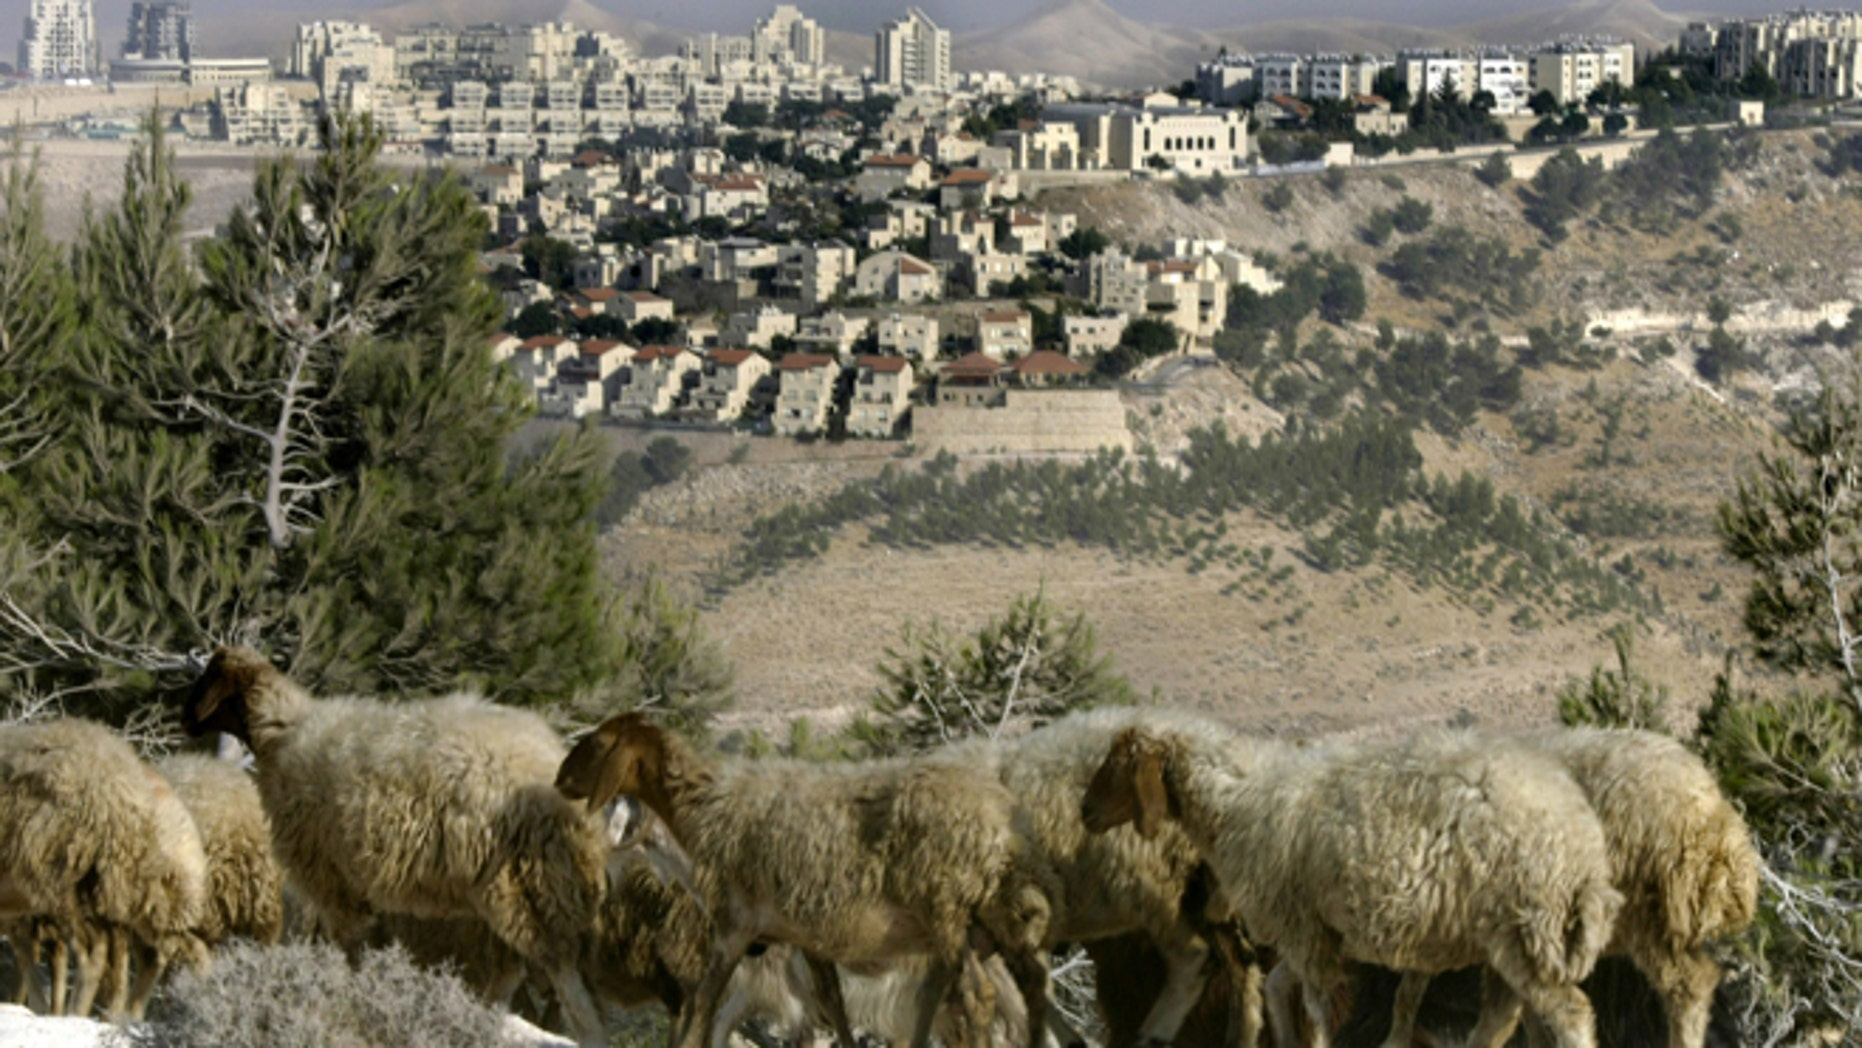 Aug. 25, 2005: Sheep graze in front of Maaleh Adumim, the largest Jewish settlement in the West Bank, five miles (8 kilometers) east of Jerusalem.